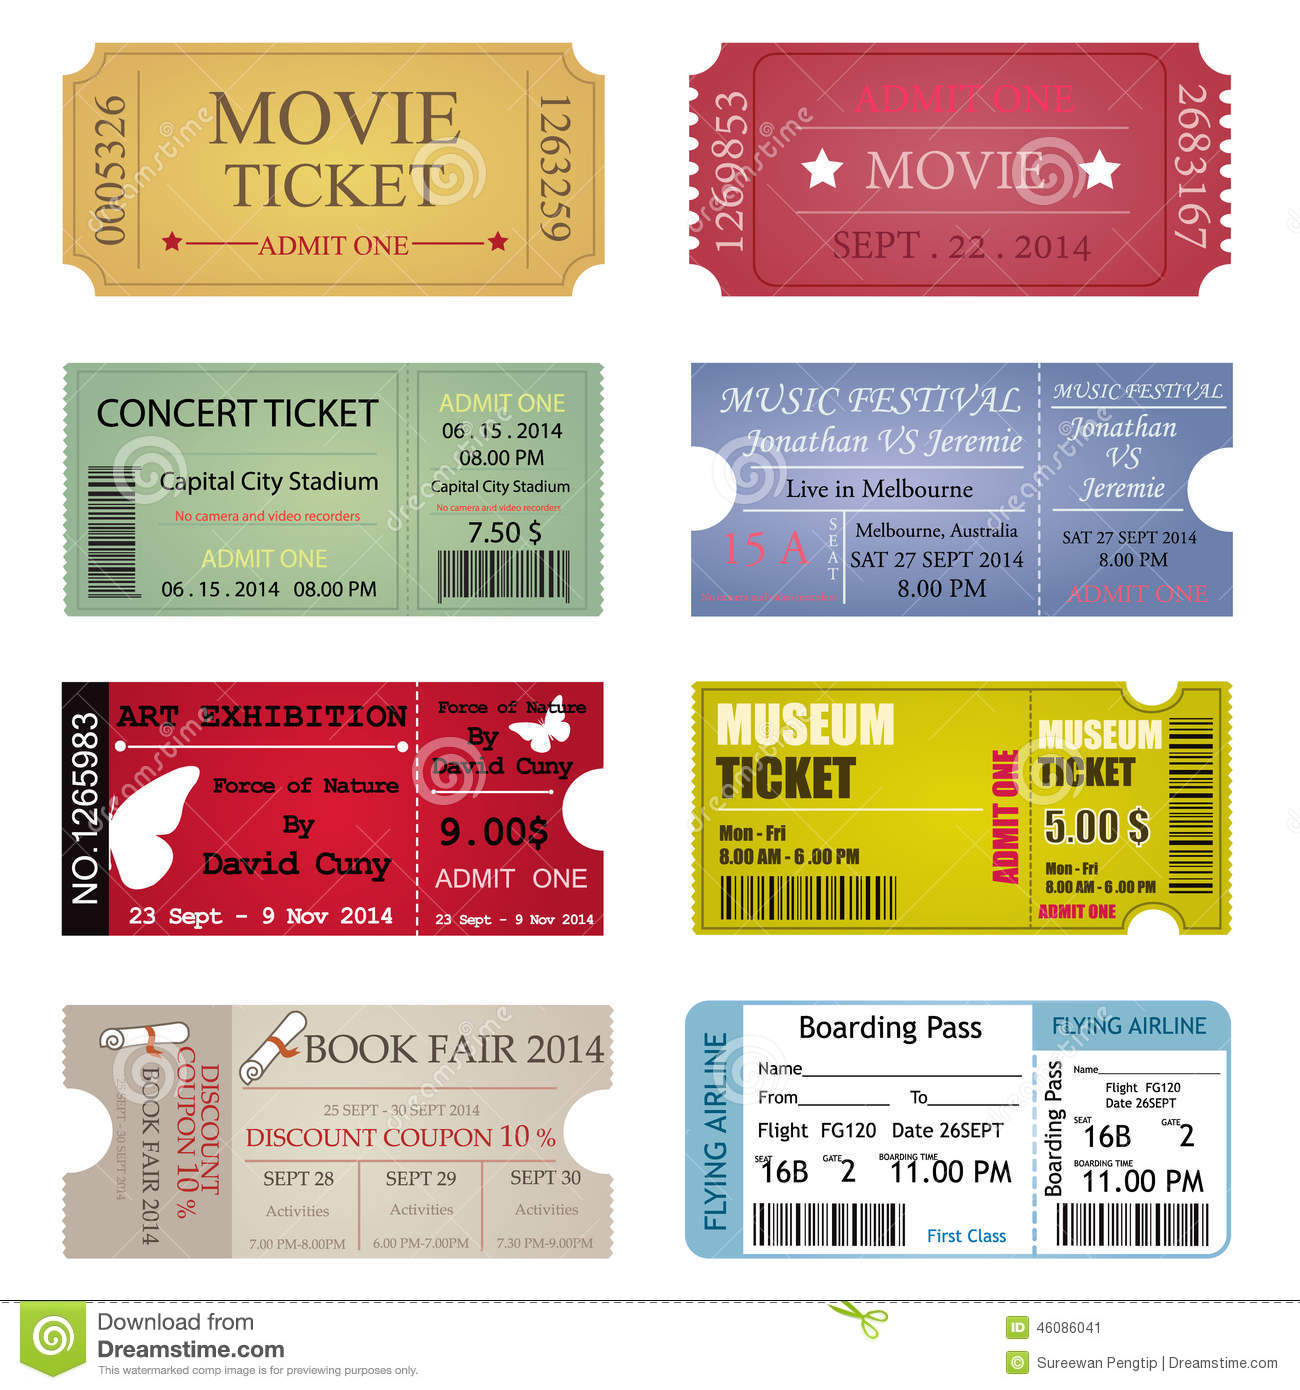 Make A Ticket Template Insssrenterprisesco Ticket Template Designs Design  Movie Concert Exhibition Boarding Pass 46086041 Make  Make Your Own Concert Tickets